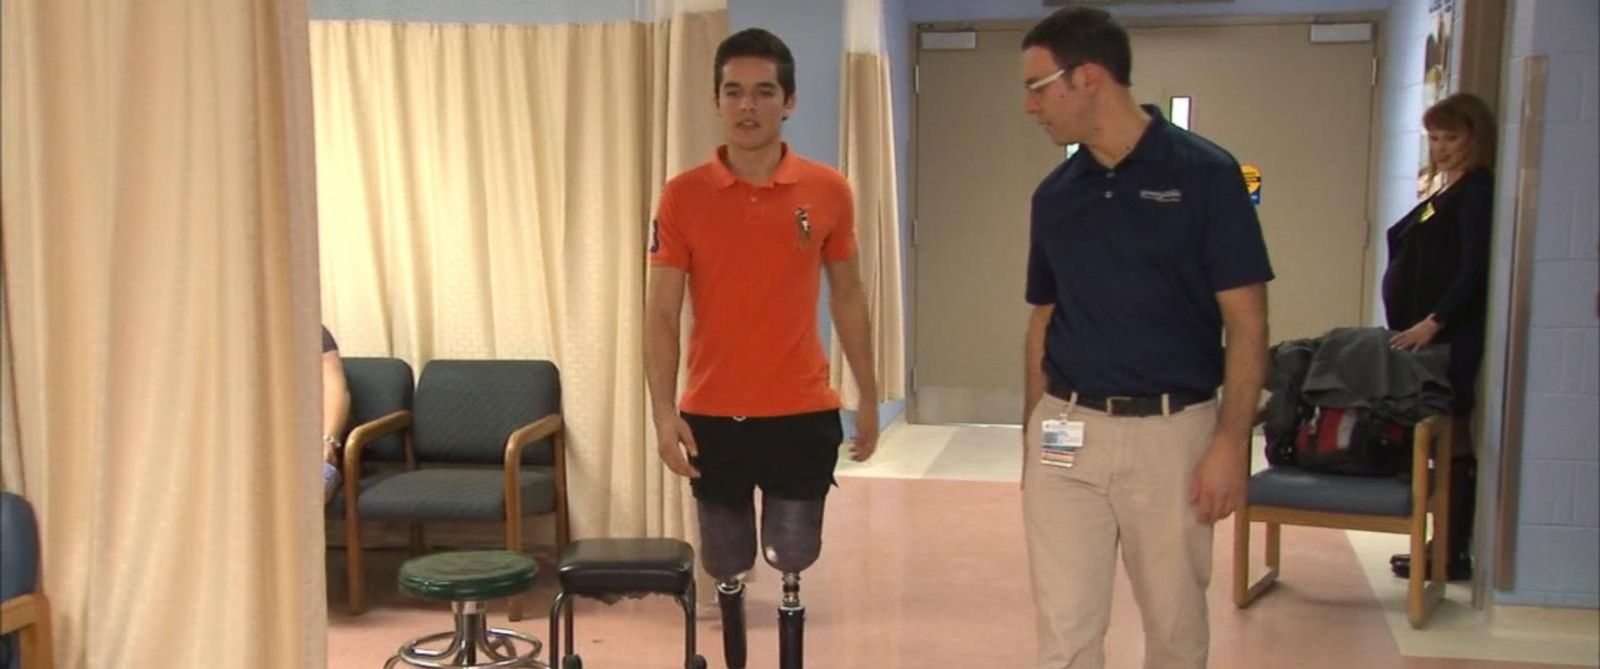 PHOTO: Vidal Lopez, 19, lost both his legs above the knee after a car accident in Mexico in the summer of 2016. On Feb. 6, 2017, he was able to walk again with the help of two microprocessor controlled knees donated by the foundation of Heather Abbott.